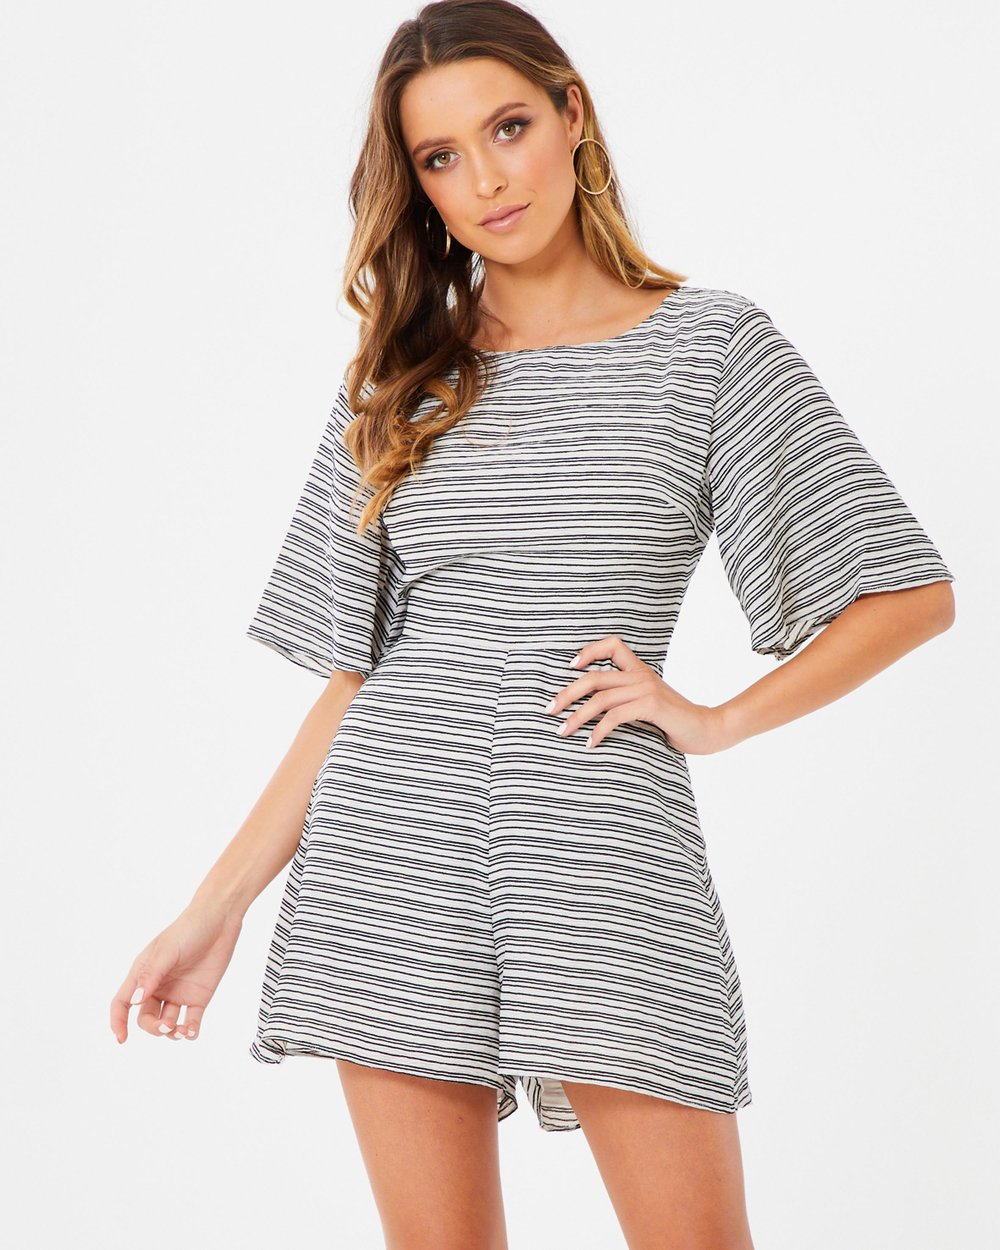 55e3827e96b Adrienne Tie Up Playsuit by Tussah Online